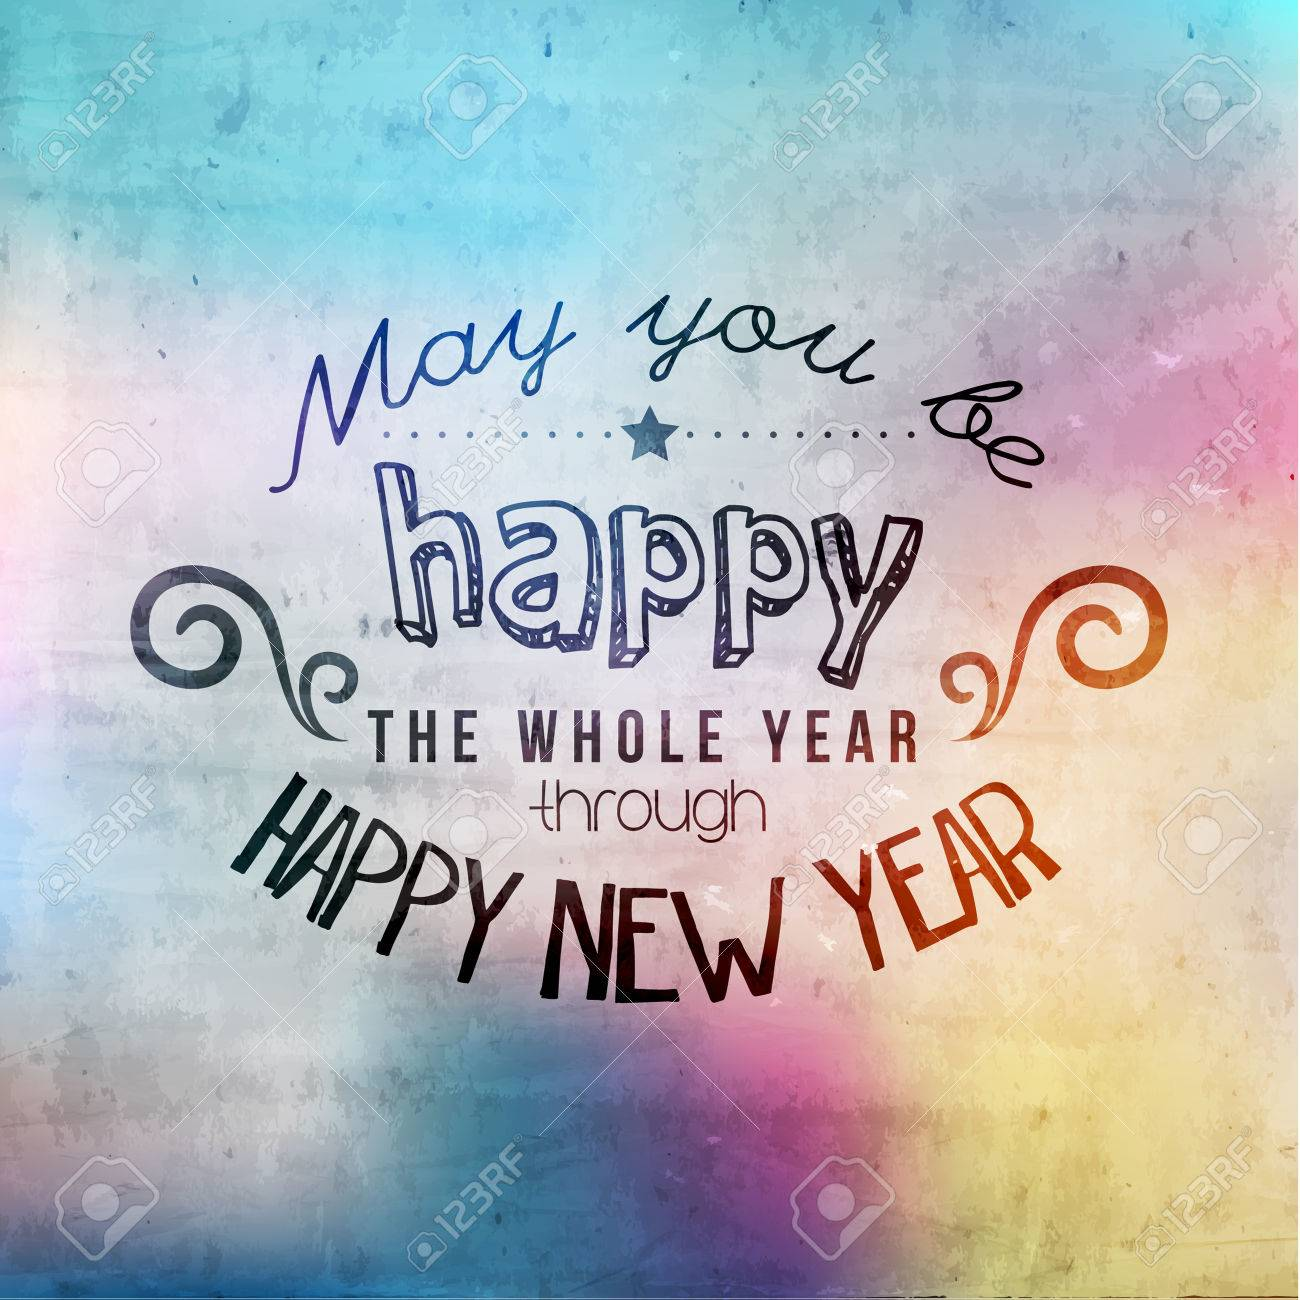 Happy new year greetings quote vector design royalty free cliparts happy new year greetings quote vector design stock vector 33328193 m4hsunfo